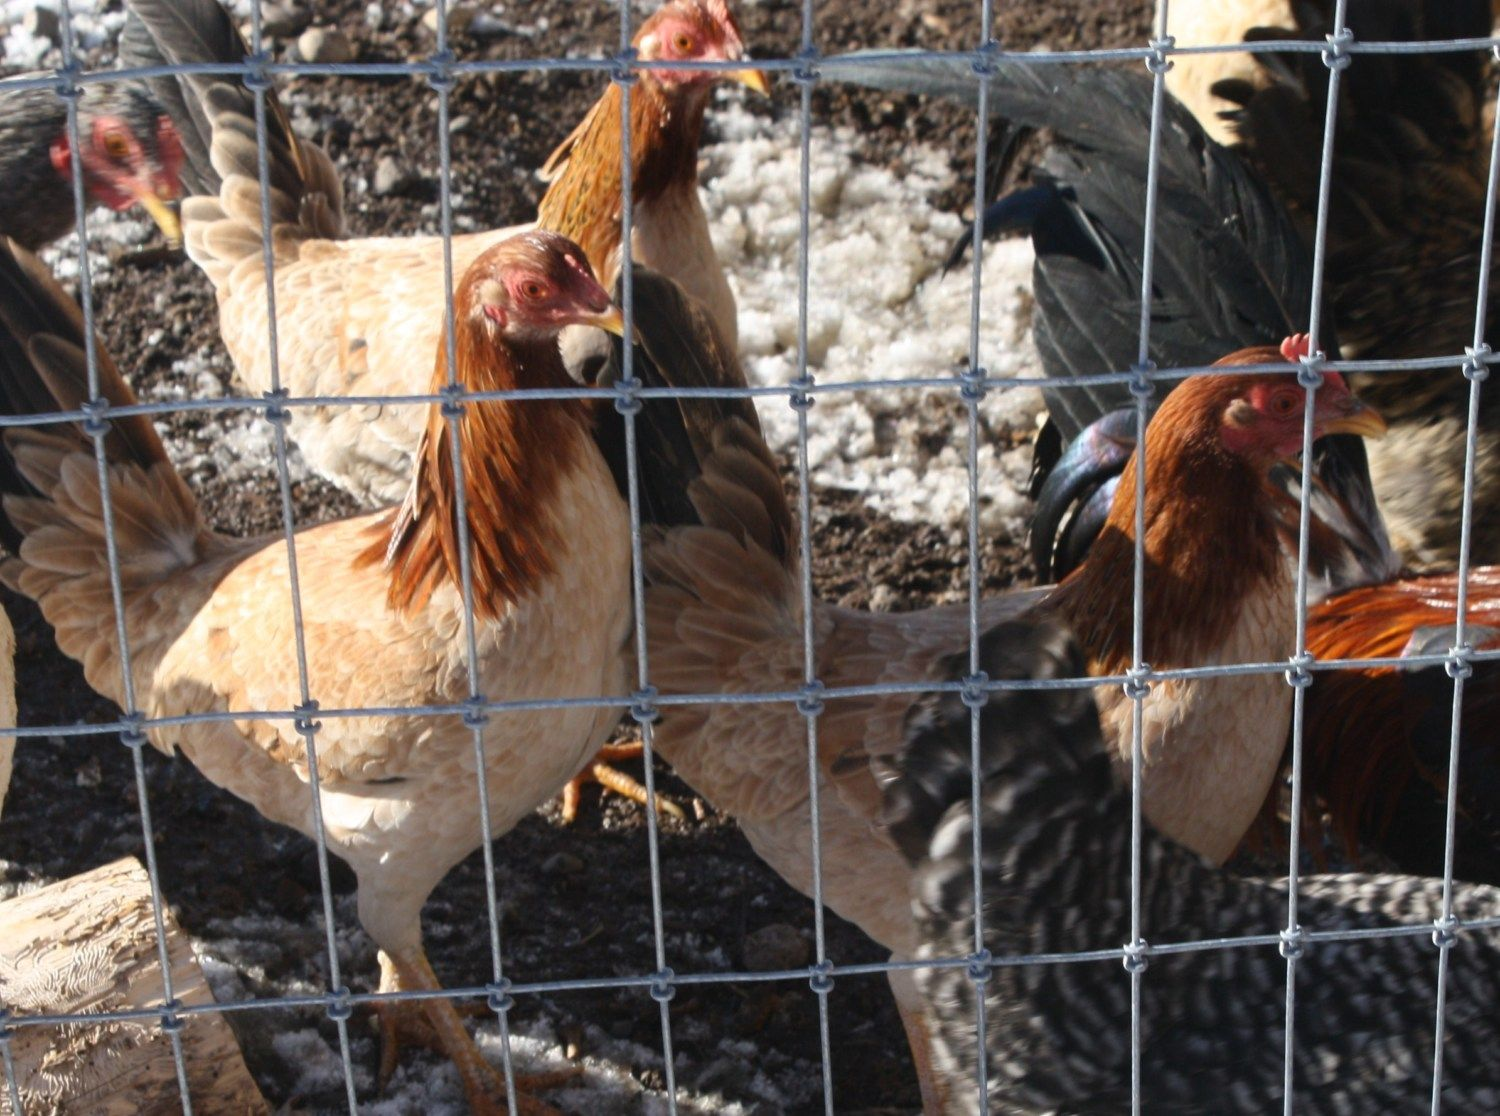 Yellow Leg Hatch Hens in comunity pin